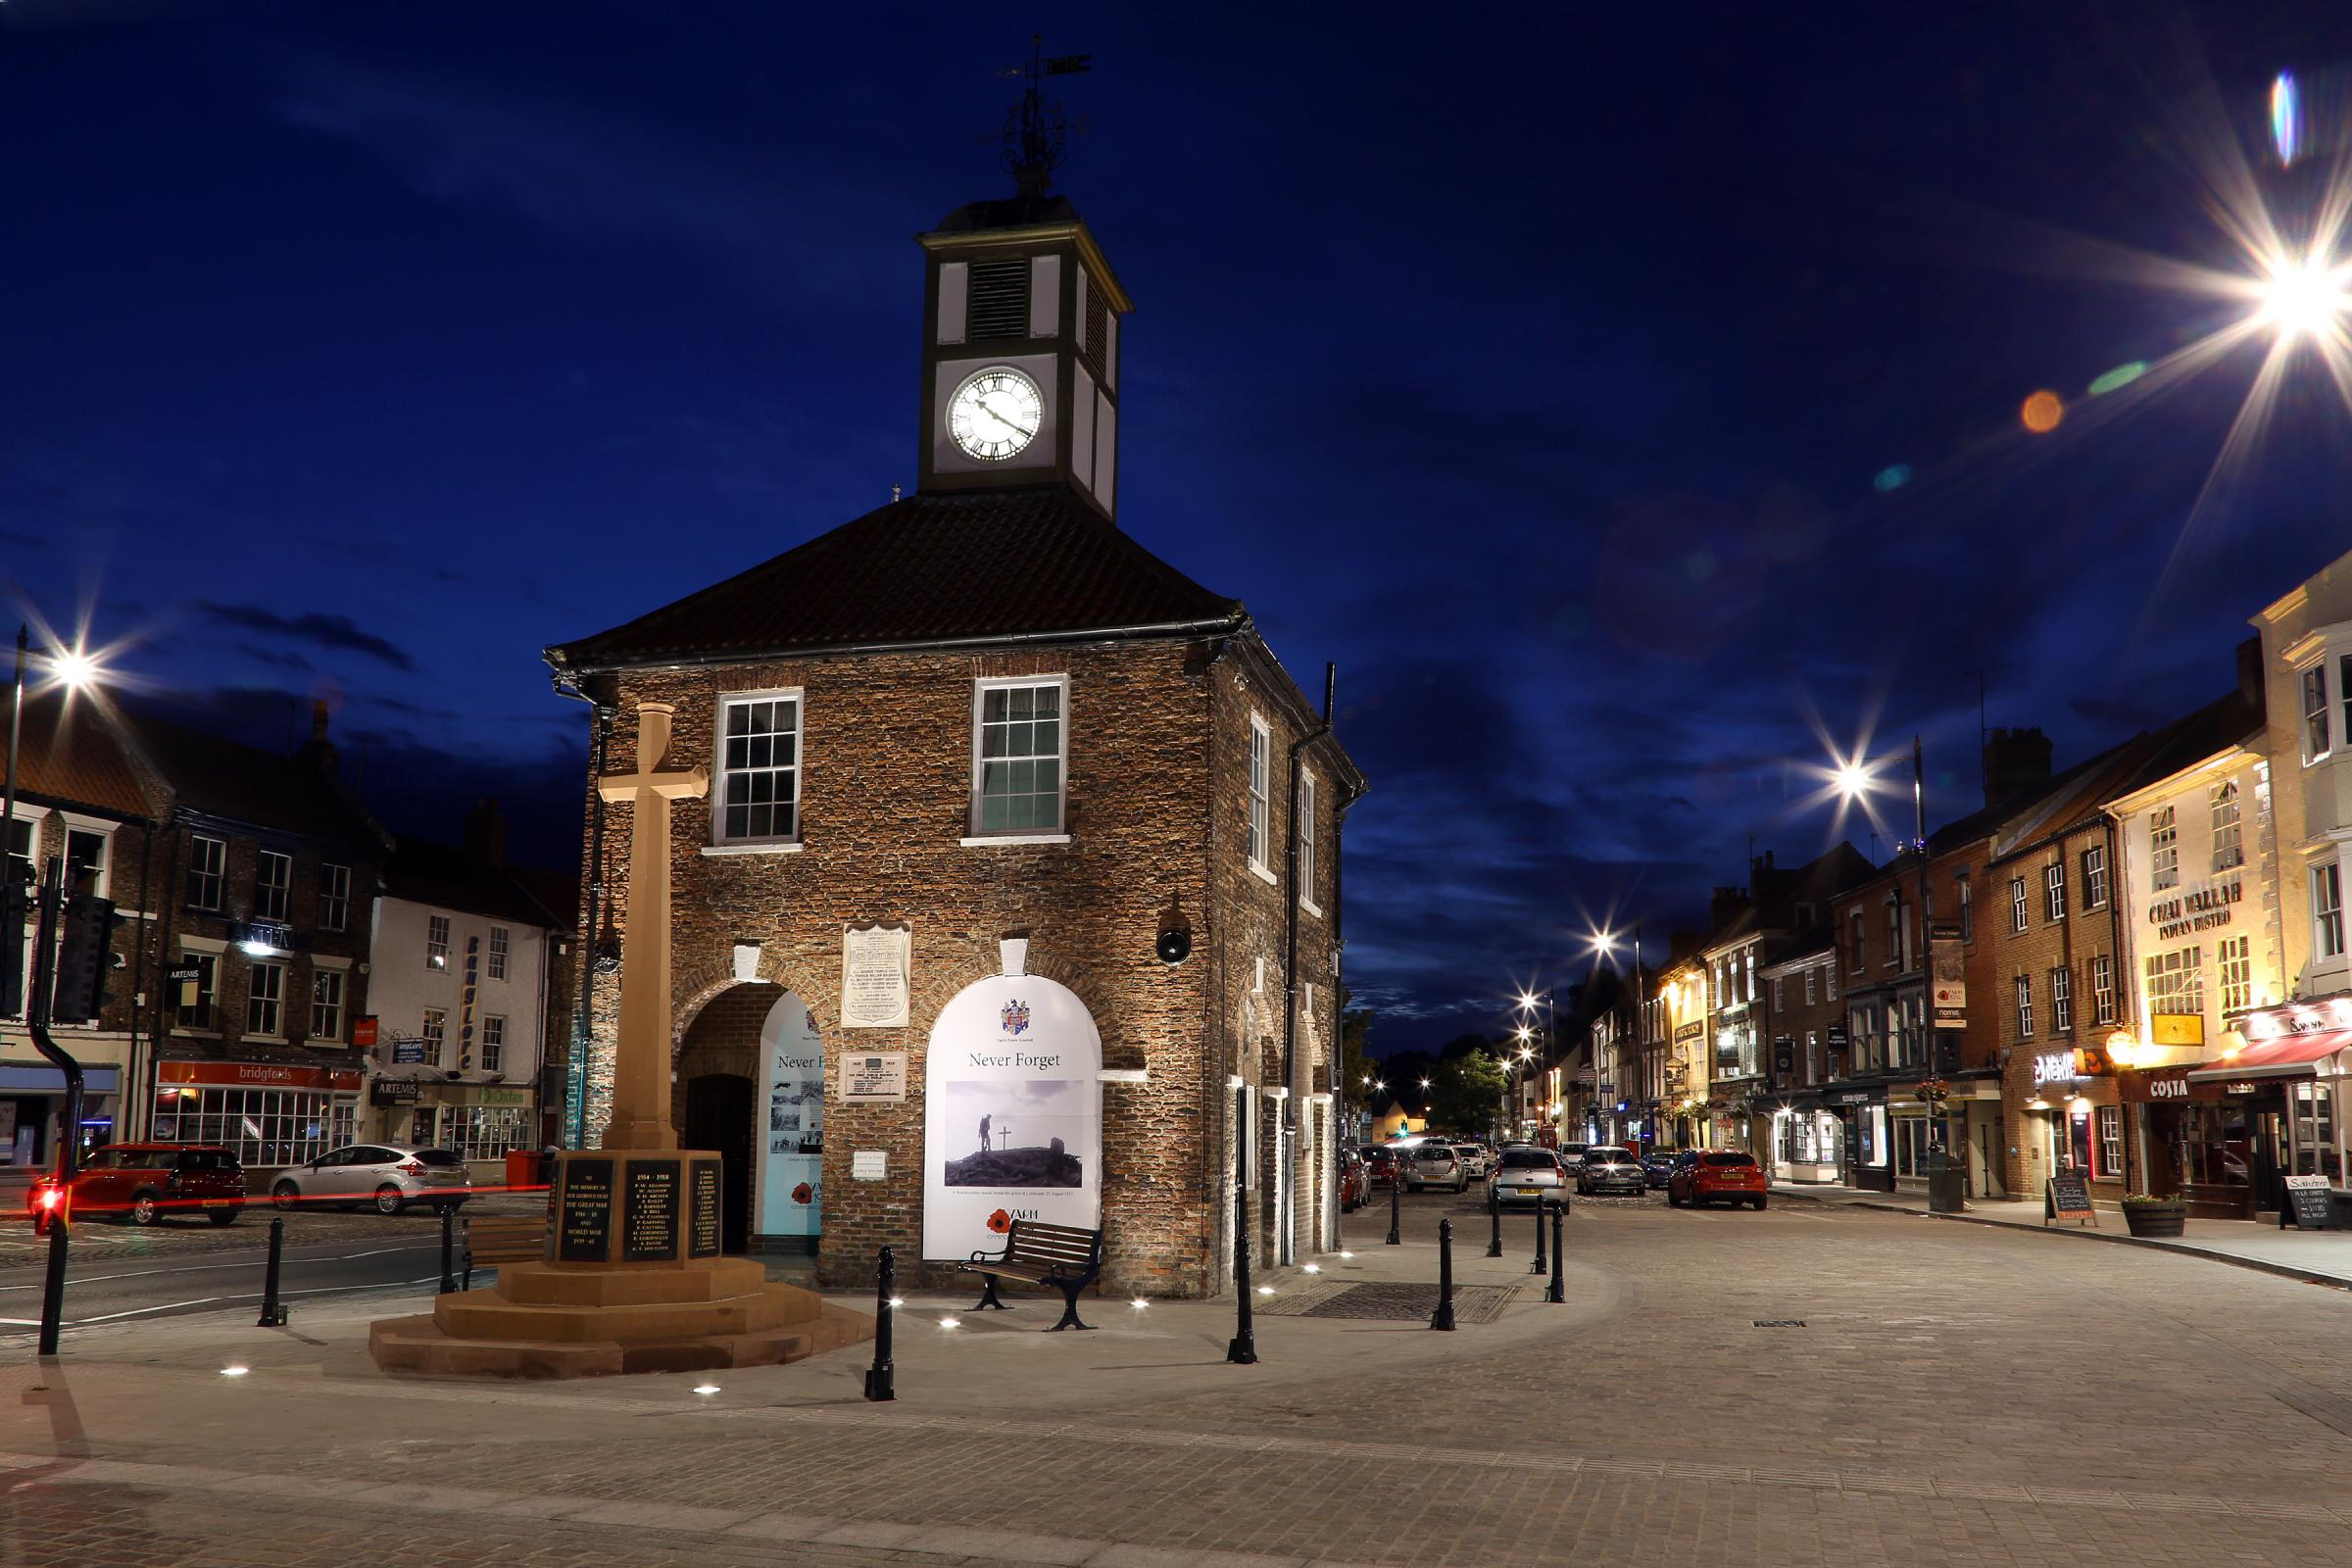 Taken:  Monday the 28th July 2014  Yarm War Memorial and Town Hall at night.          Byline: Dave Charnley Photography Ltd  Website Link: www.davecharnleyphotography.com   All Rights Reserved 2014  Mobile: 07753559 Office: 01642 586269  Email: info@davec